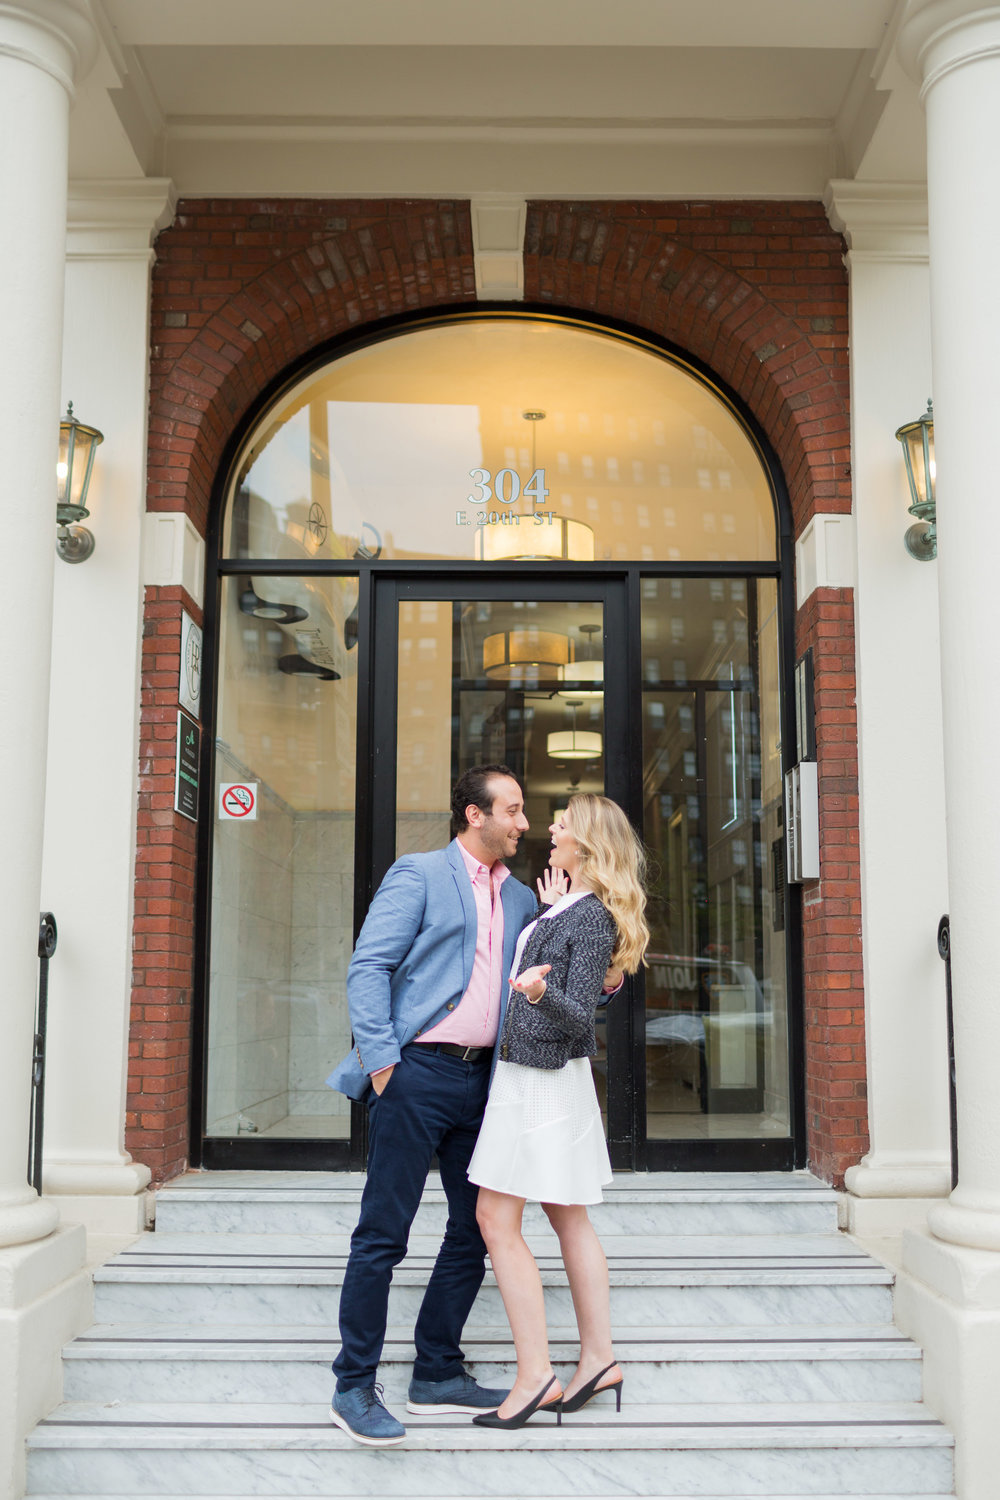 Melissa Kruse Photography - Courtney & JP Gramercy NYC Engagement Photos-103.jpg